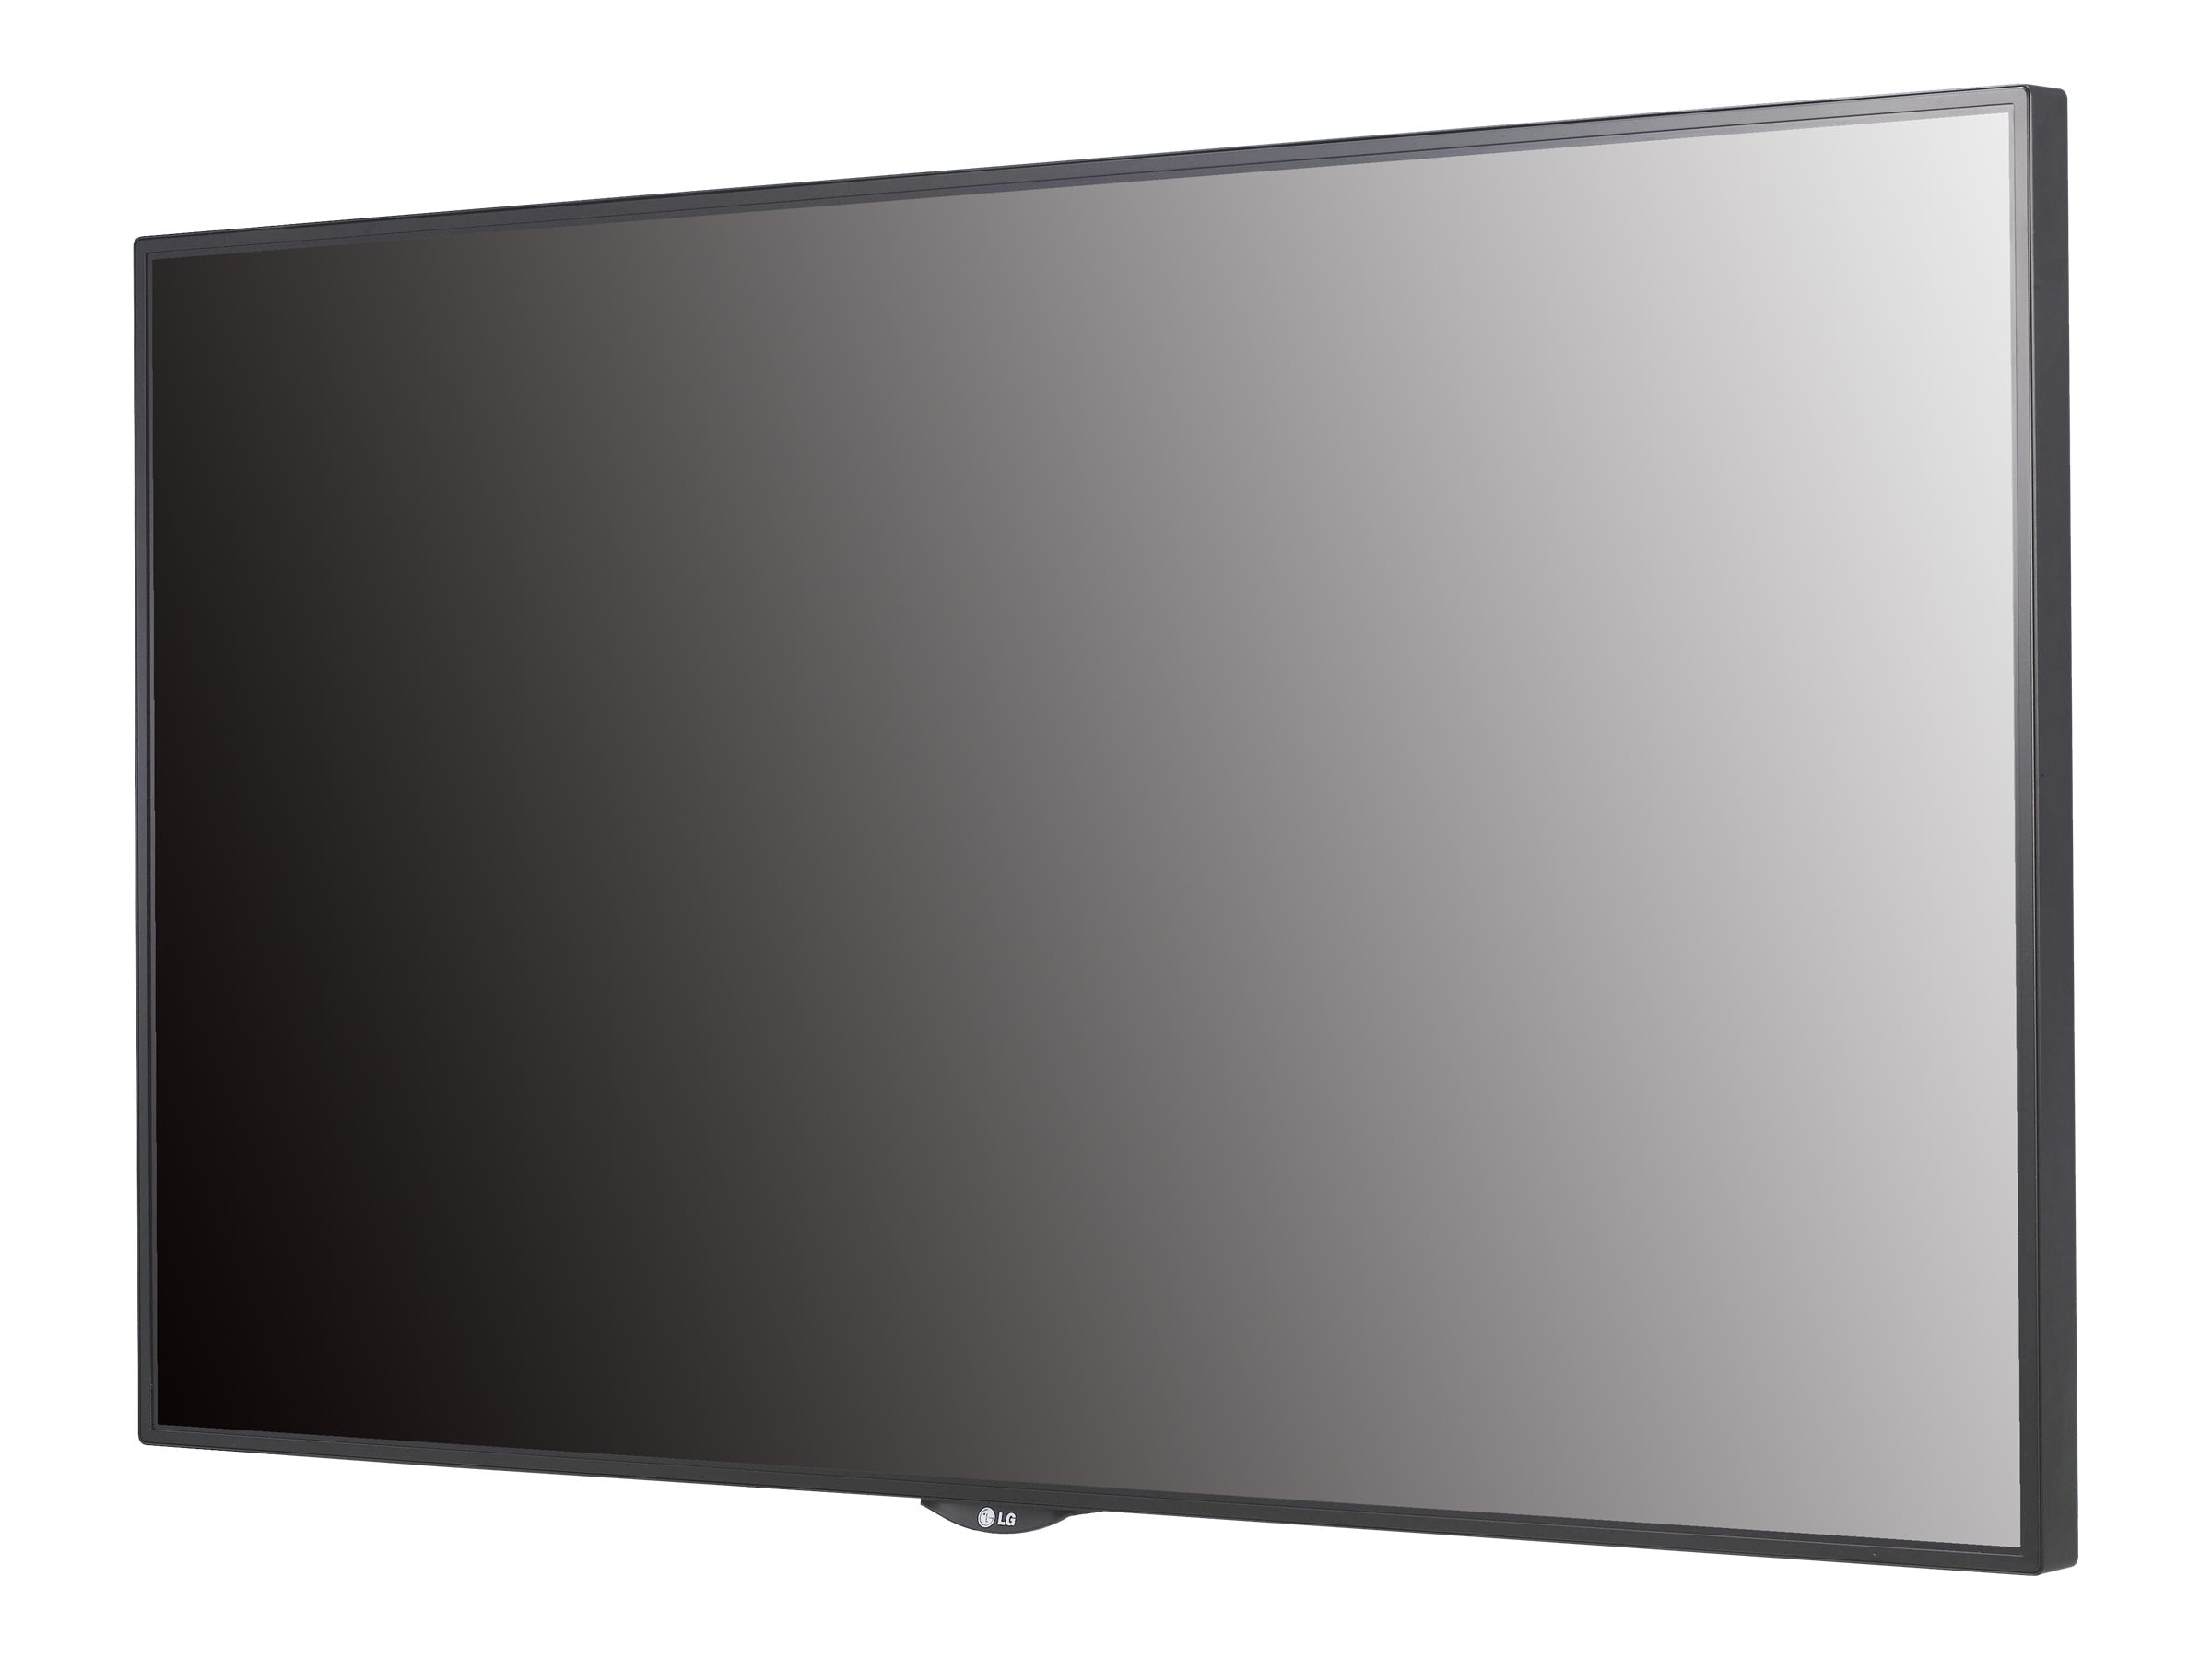 LG 55 LS75A-5B Full HD LED-LCD Display, Black, 55LS75A-5B